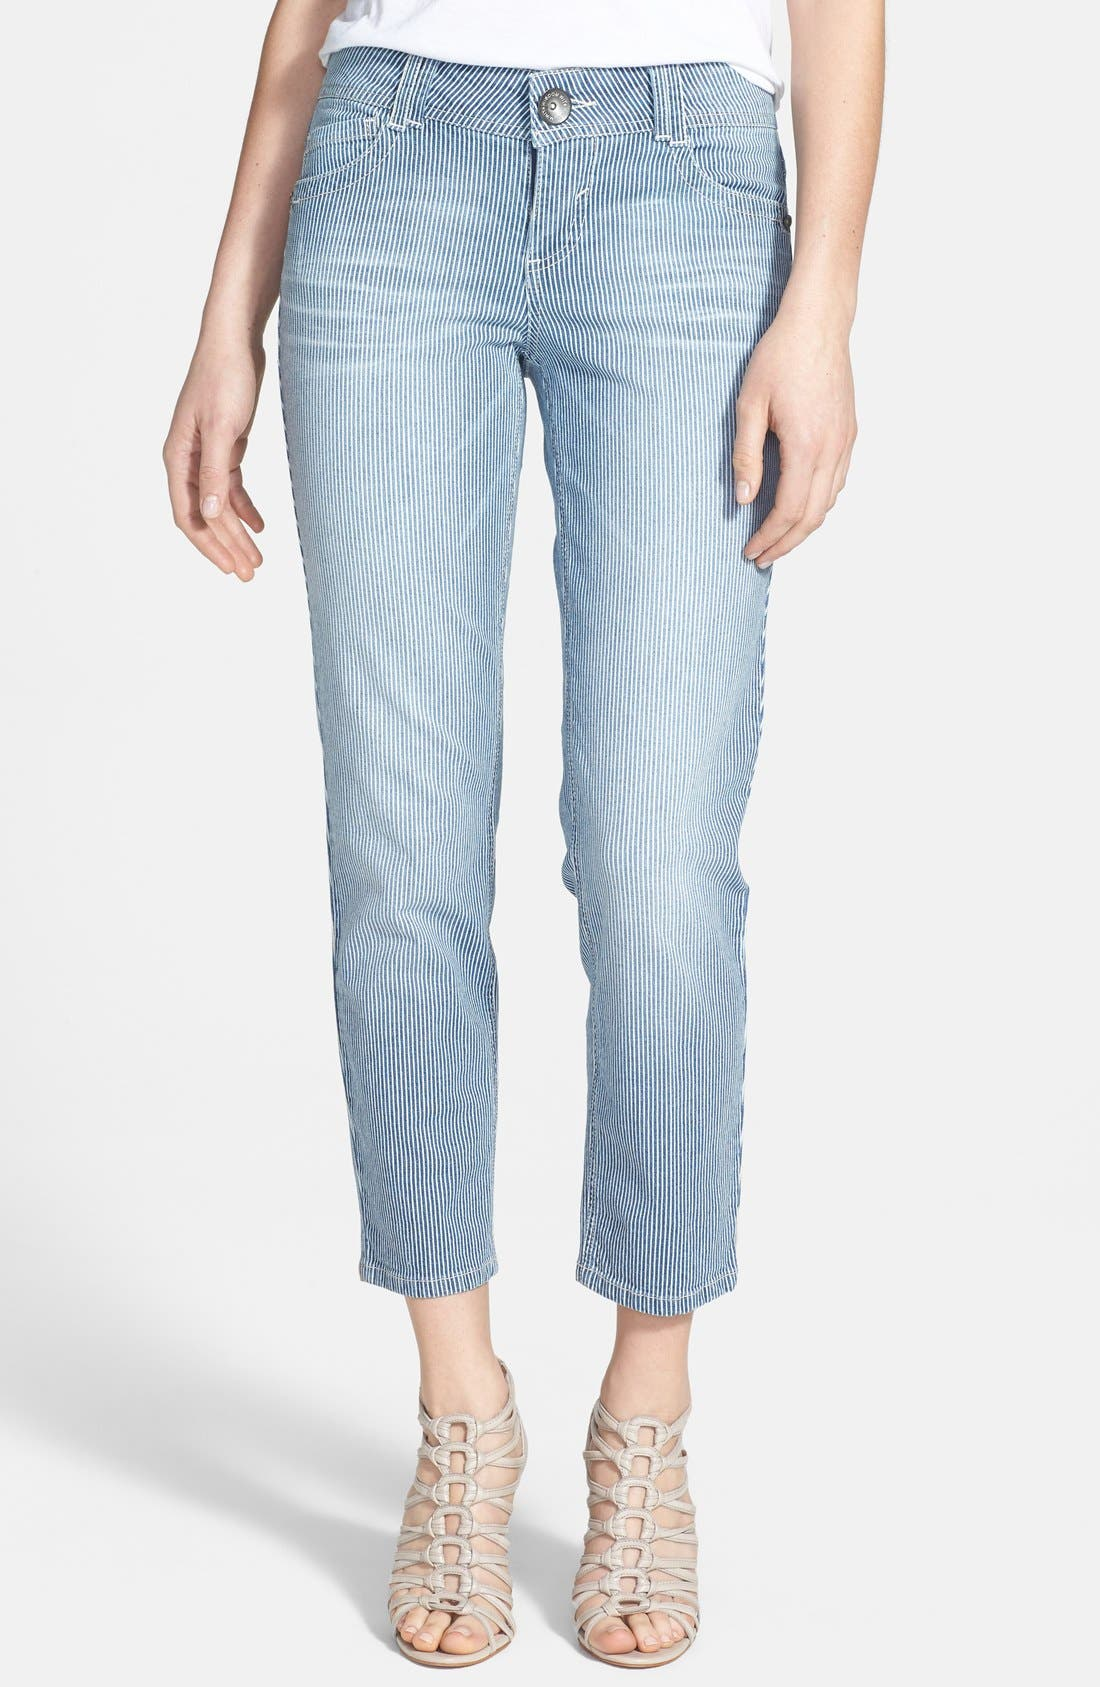 Main Image - Wit & Wisdom Stretch Ankle Skinny Jeans (Railroad) (Nordstrom Exclusive)